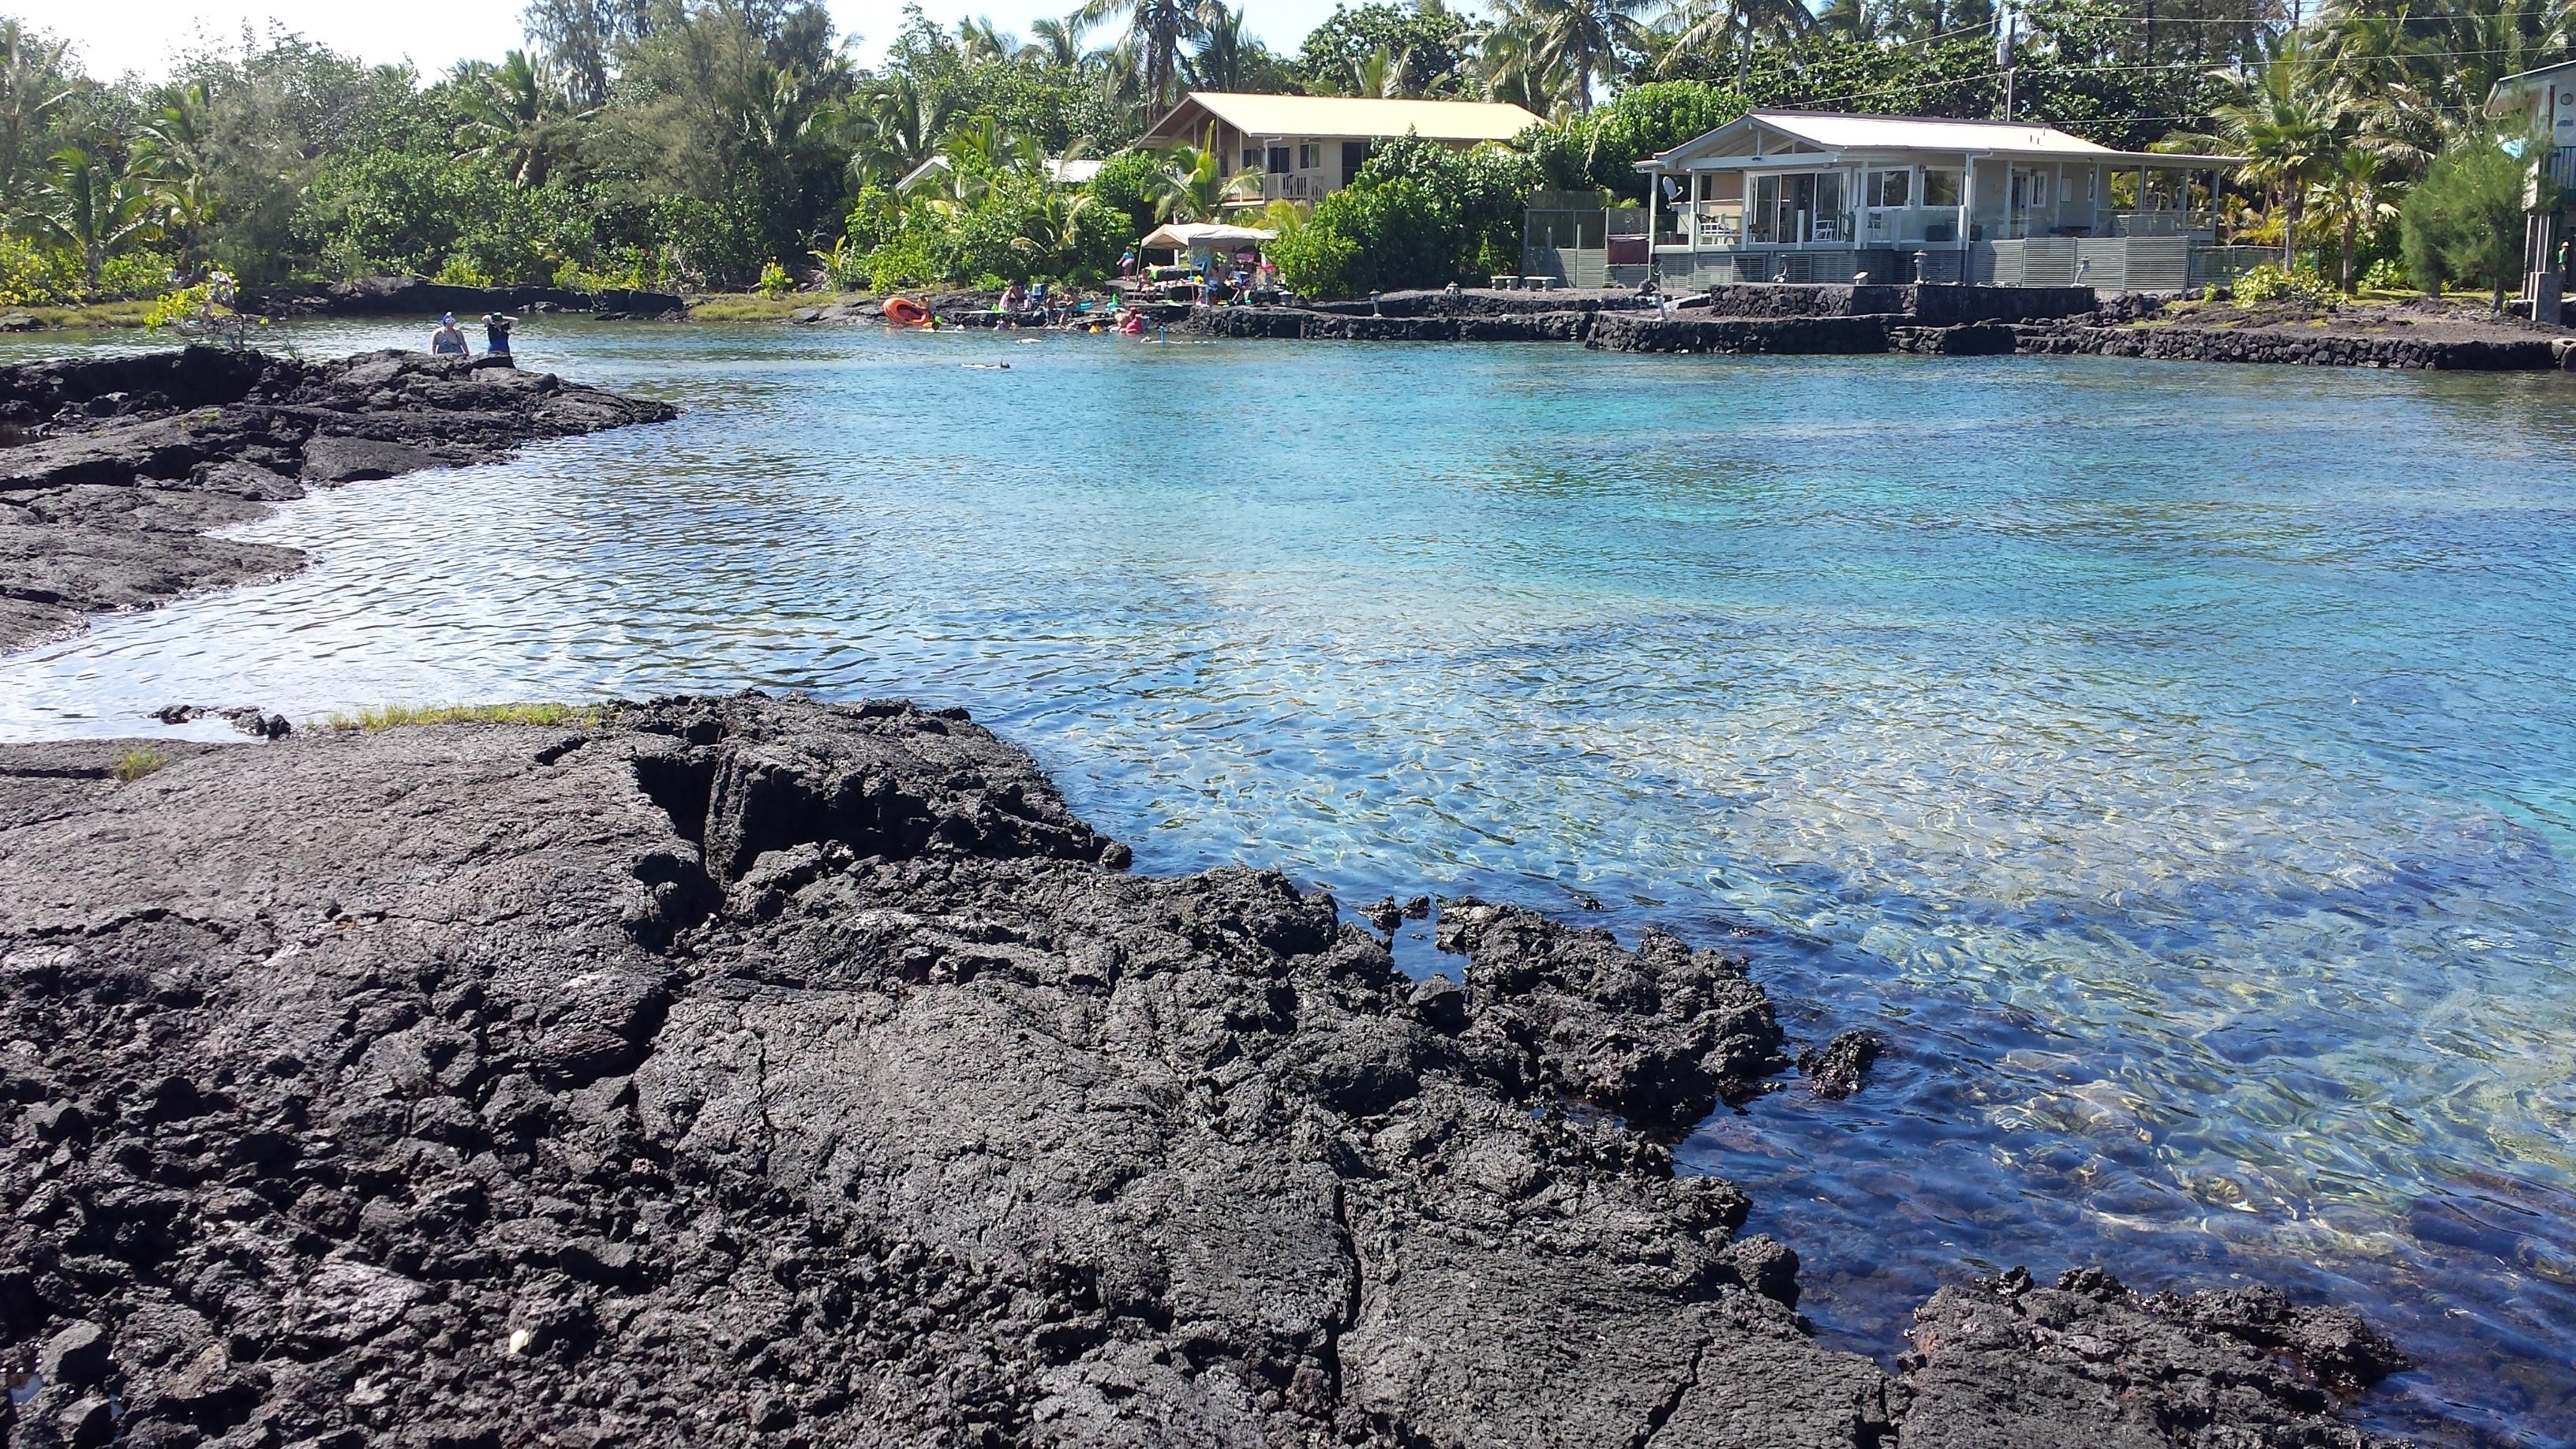 wai-o-pae-tide-pools